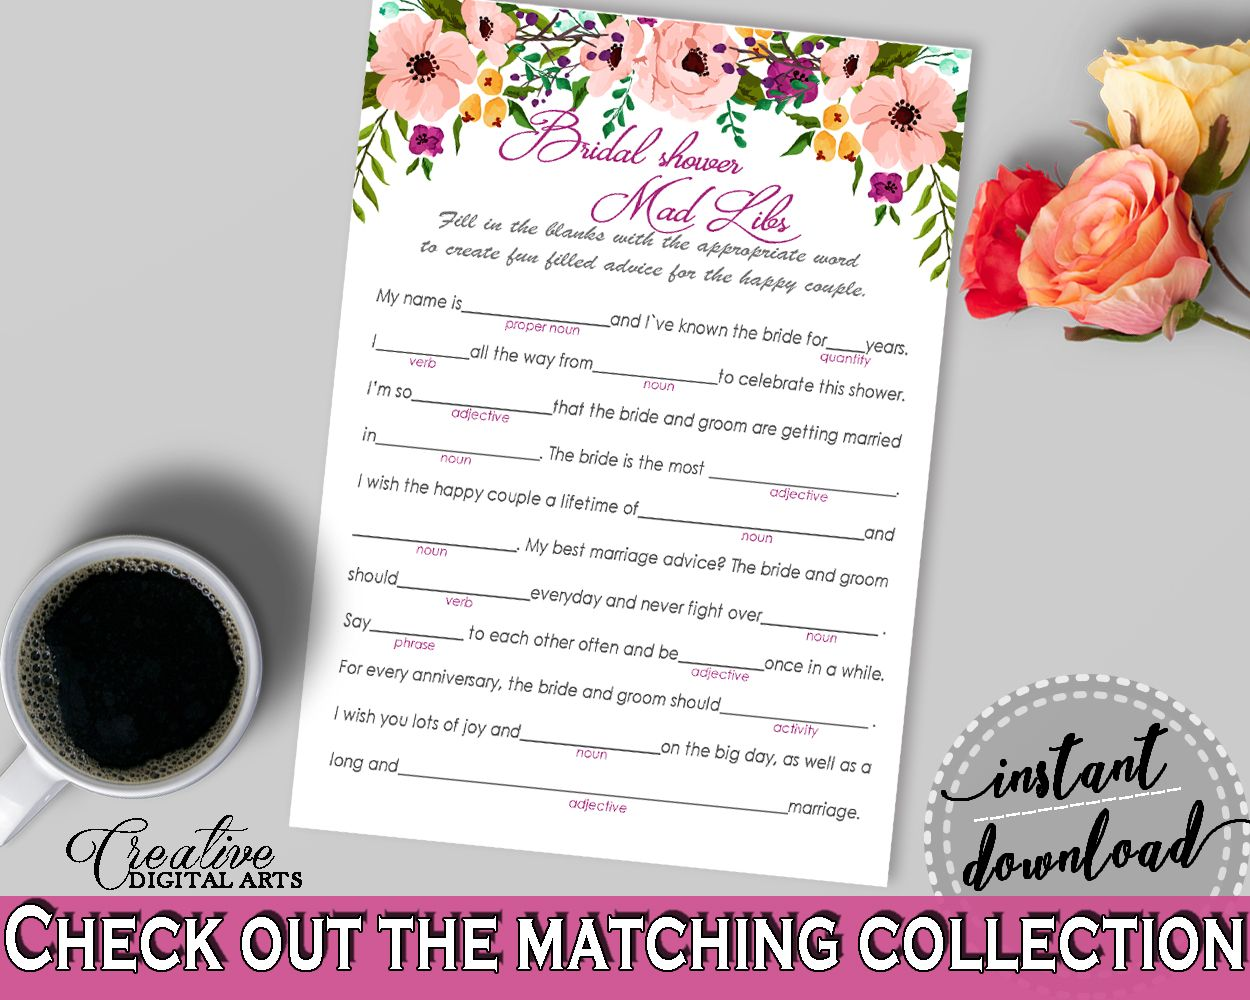 Watercolor flowers bridal shower mad libs game in white and pink watercolor flowers bridal shower mad libs game in white and pink noun pink flowers shower customizable files party theme prints 9goy4 stopboris Choice Image